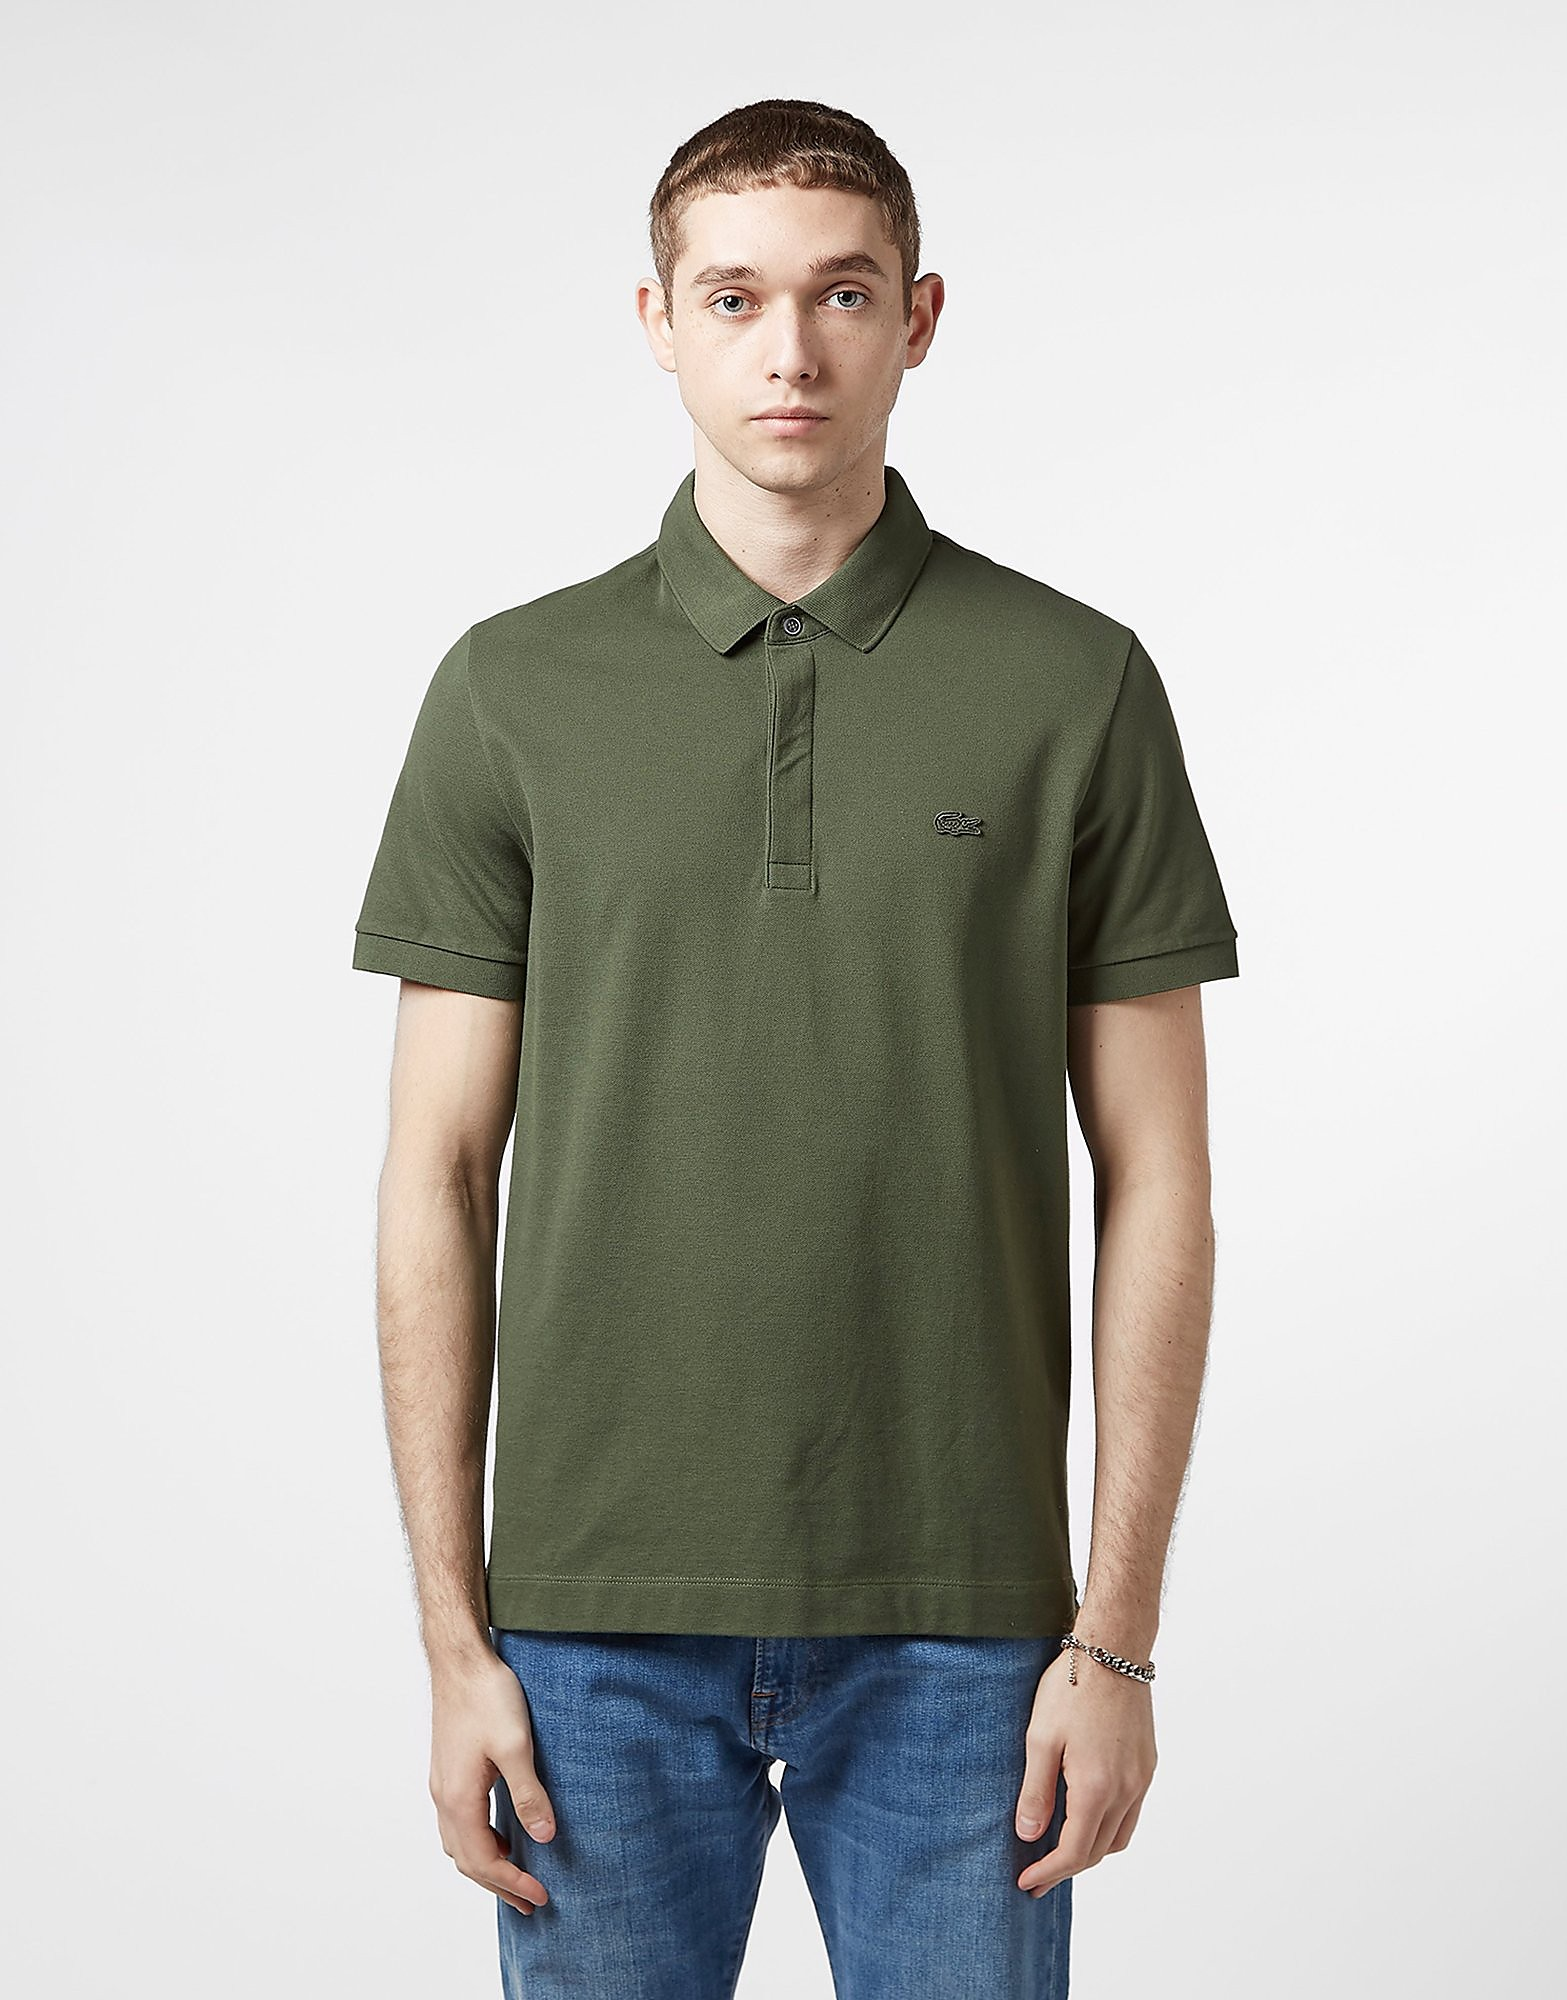 Lacoste Short Sleeve Paris Polo Shirt